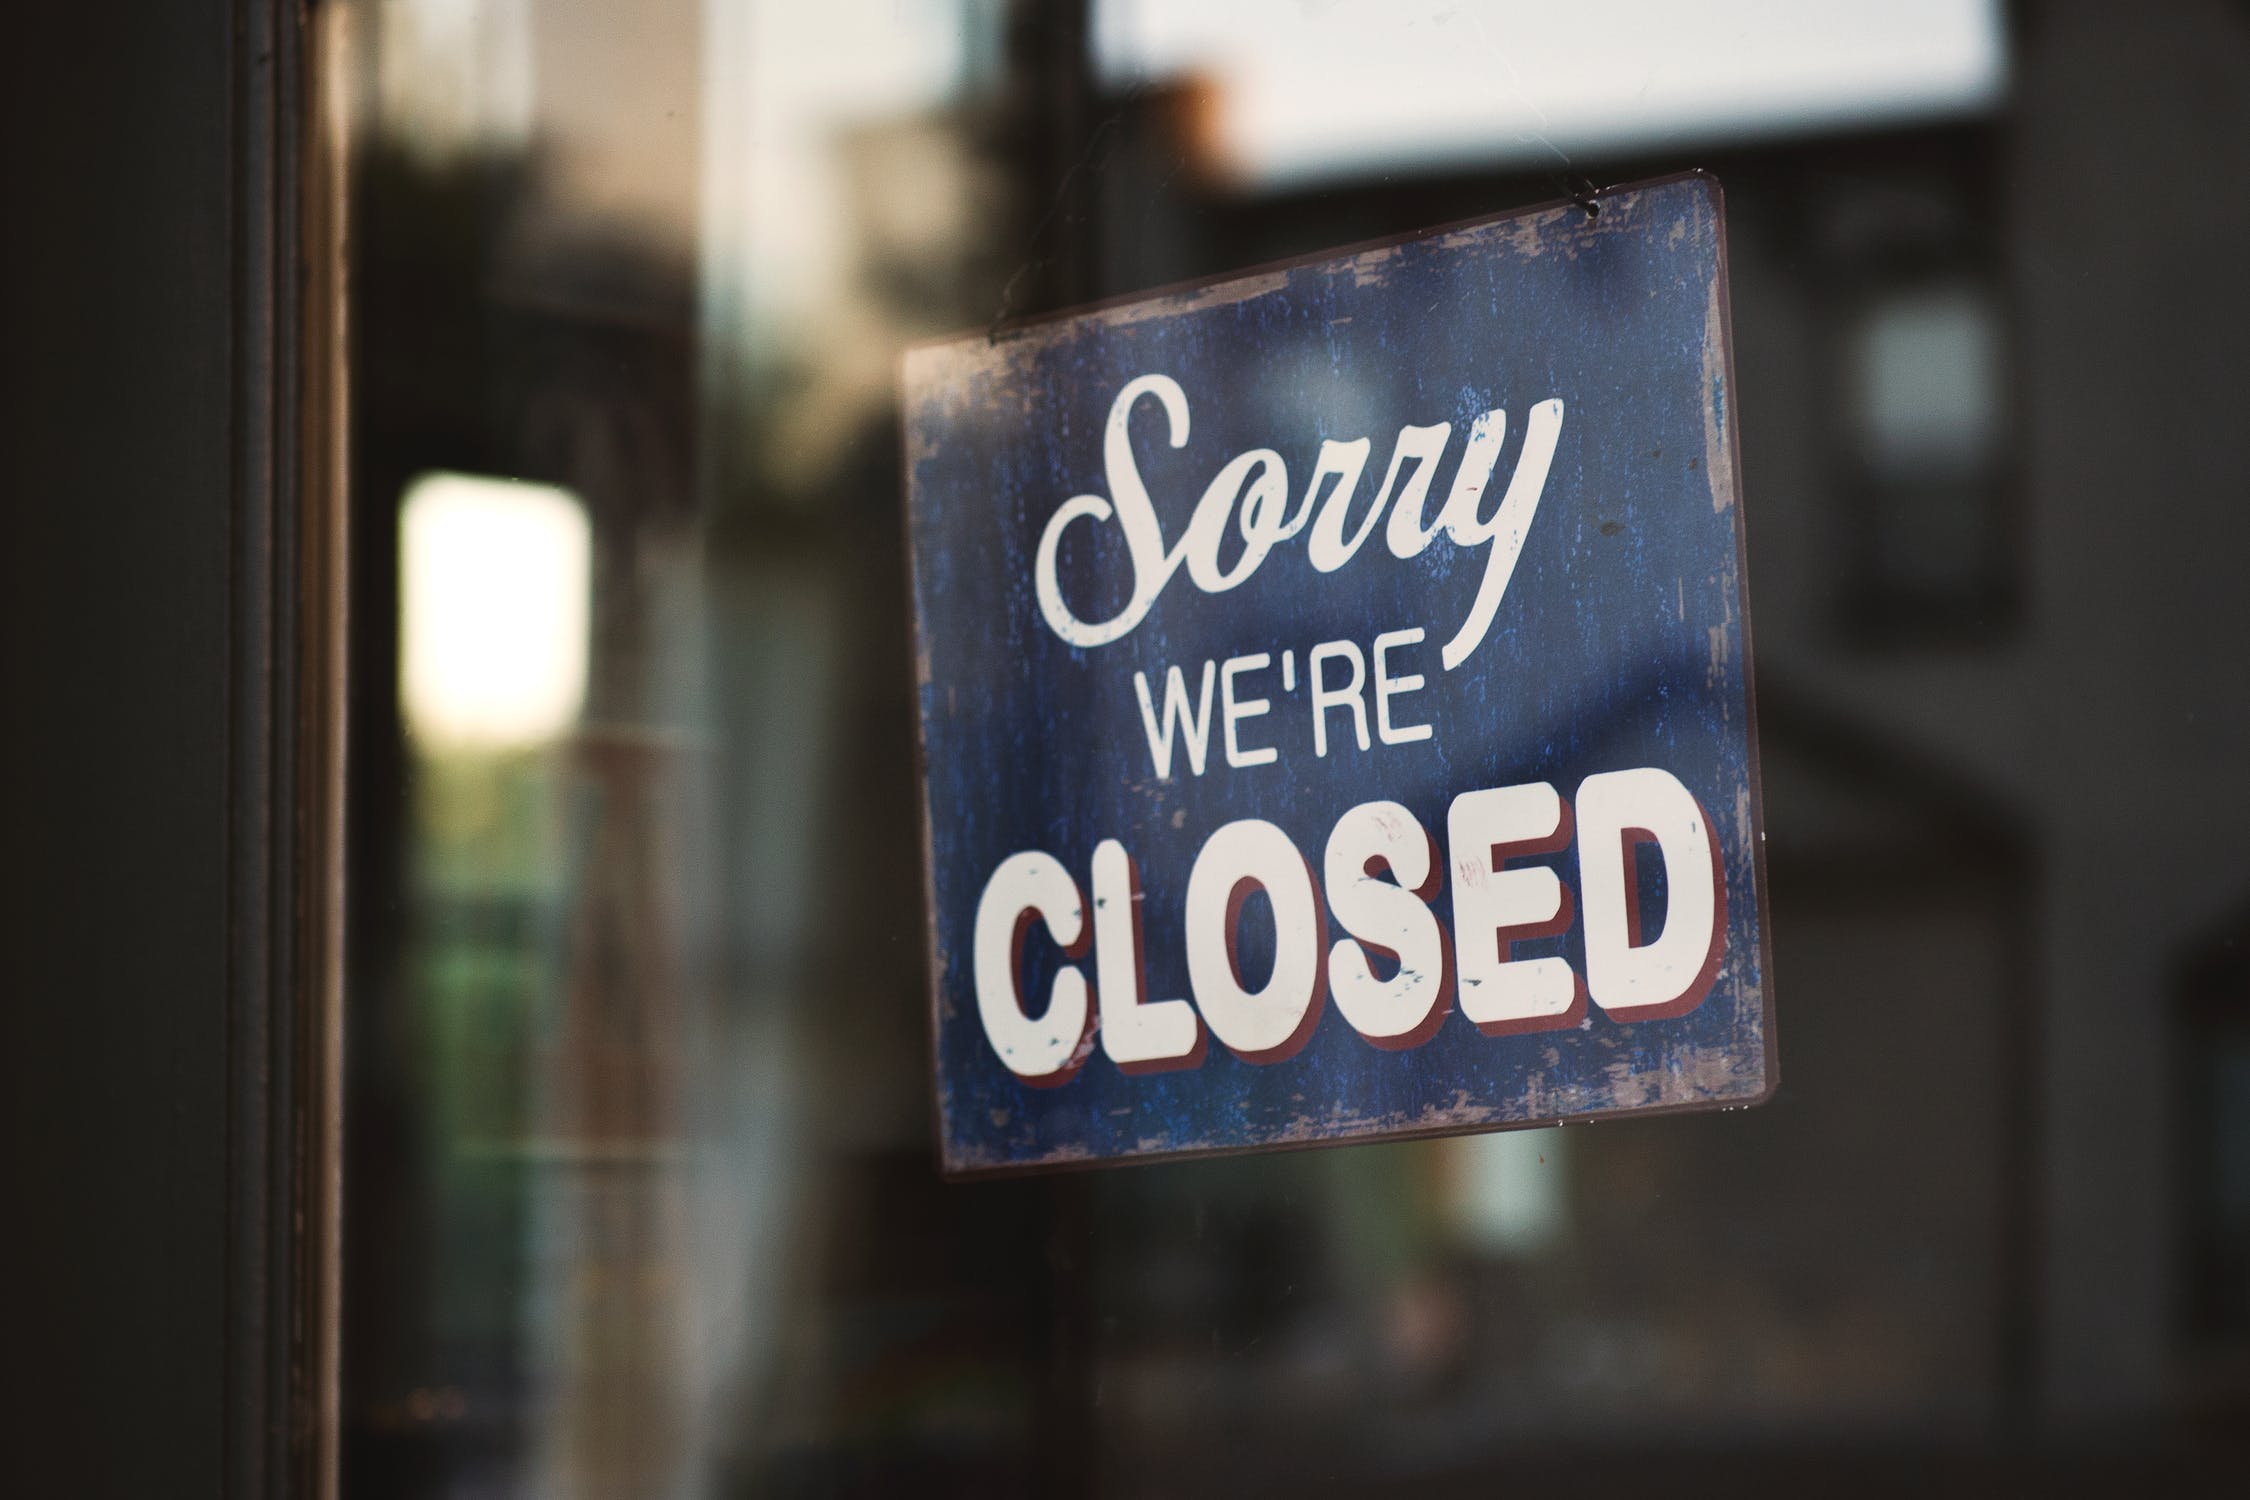 Business Interruption Insurance and Policy Exceptions for the COVID-19 Pandemic